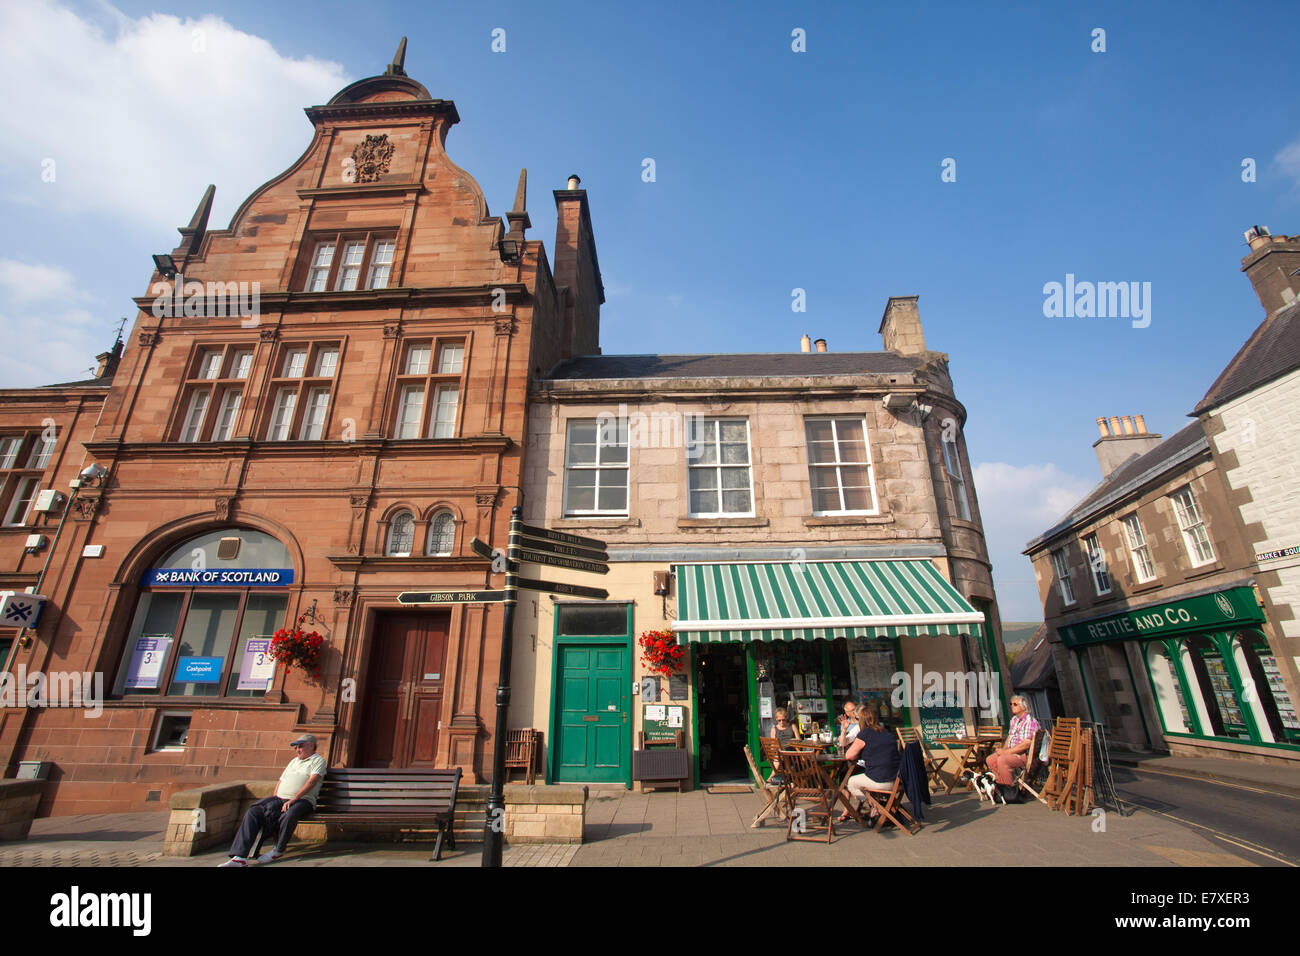 Market Square, Melrose pretty market town in the Scottish Borders, Roxburghshire, Scotland, United Kingdom - Stock Image